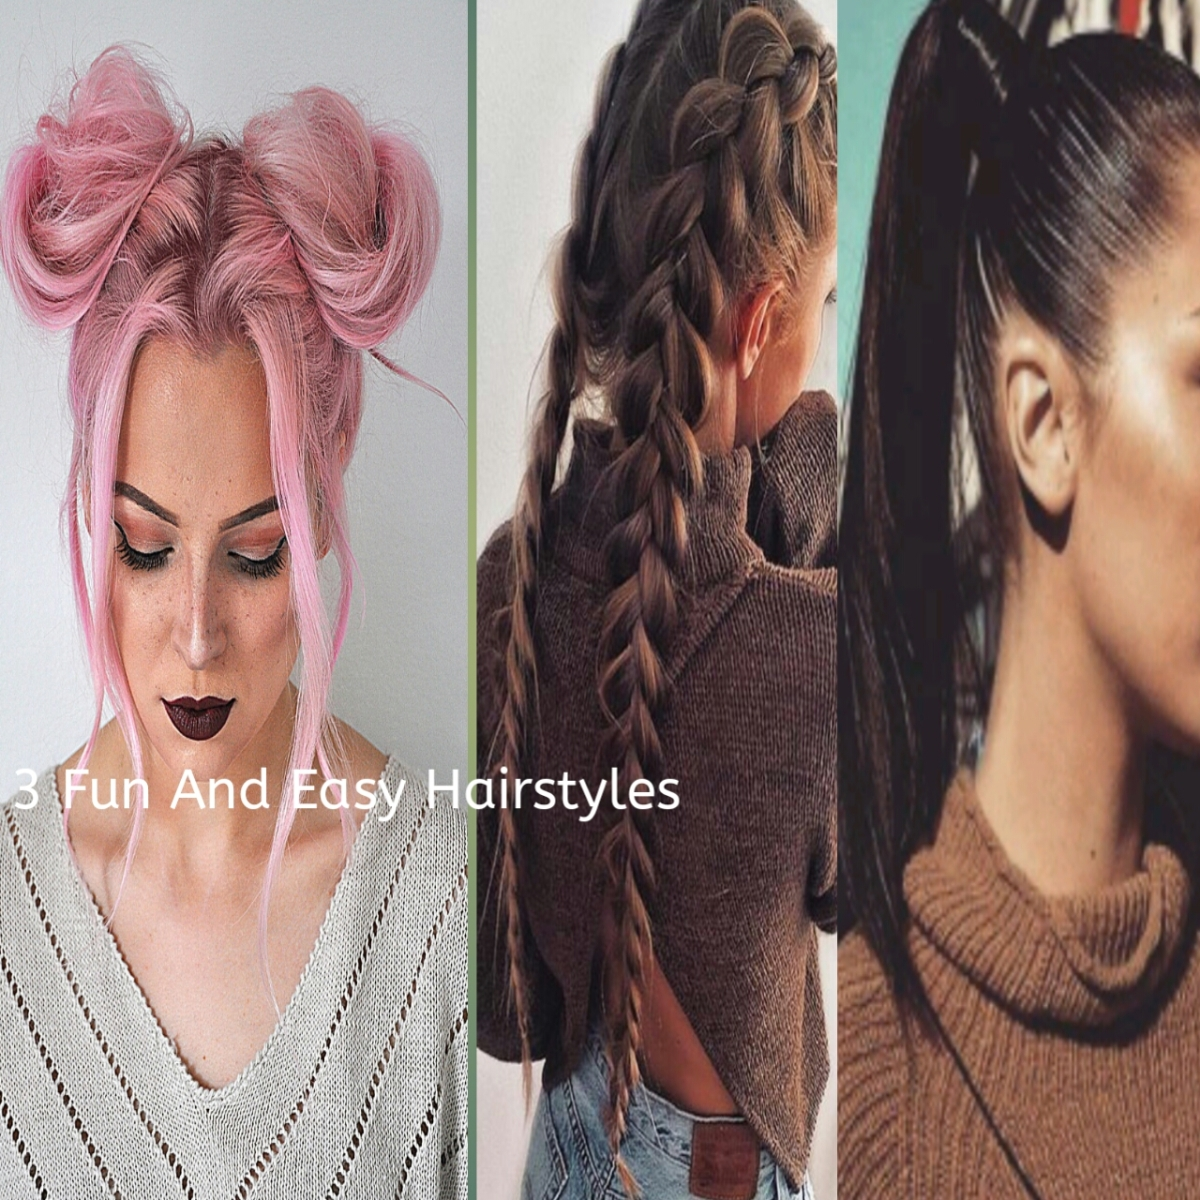 3 Fun And Easy Hairstyles – Honestly Lau